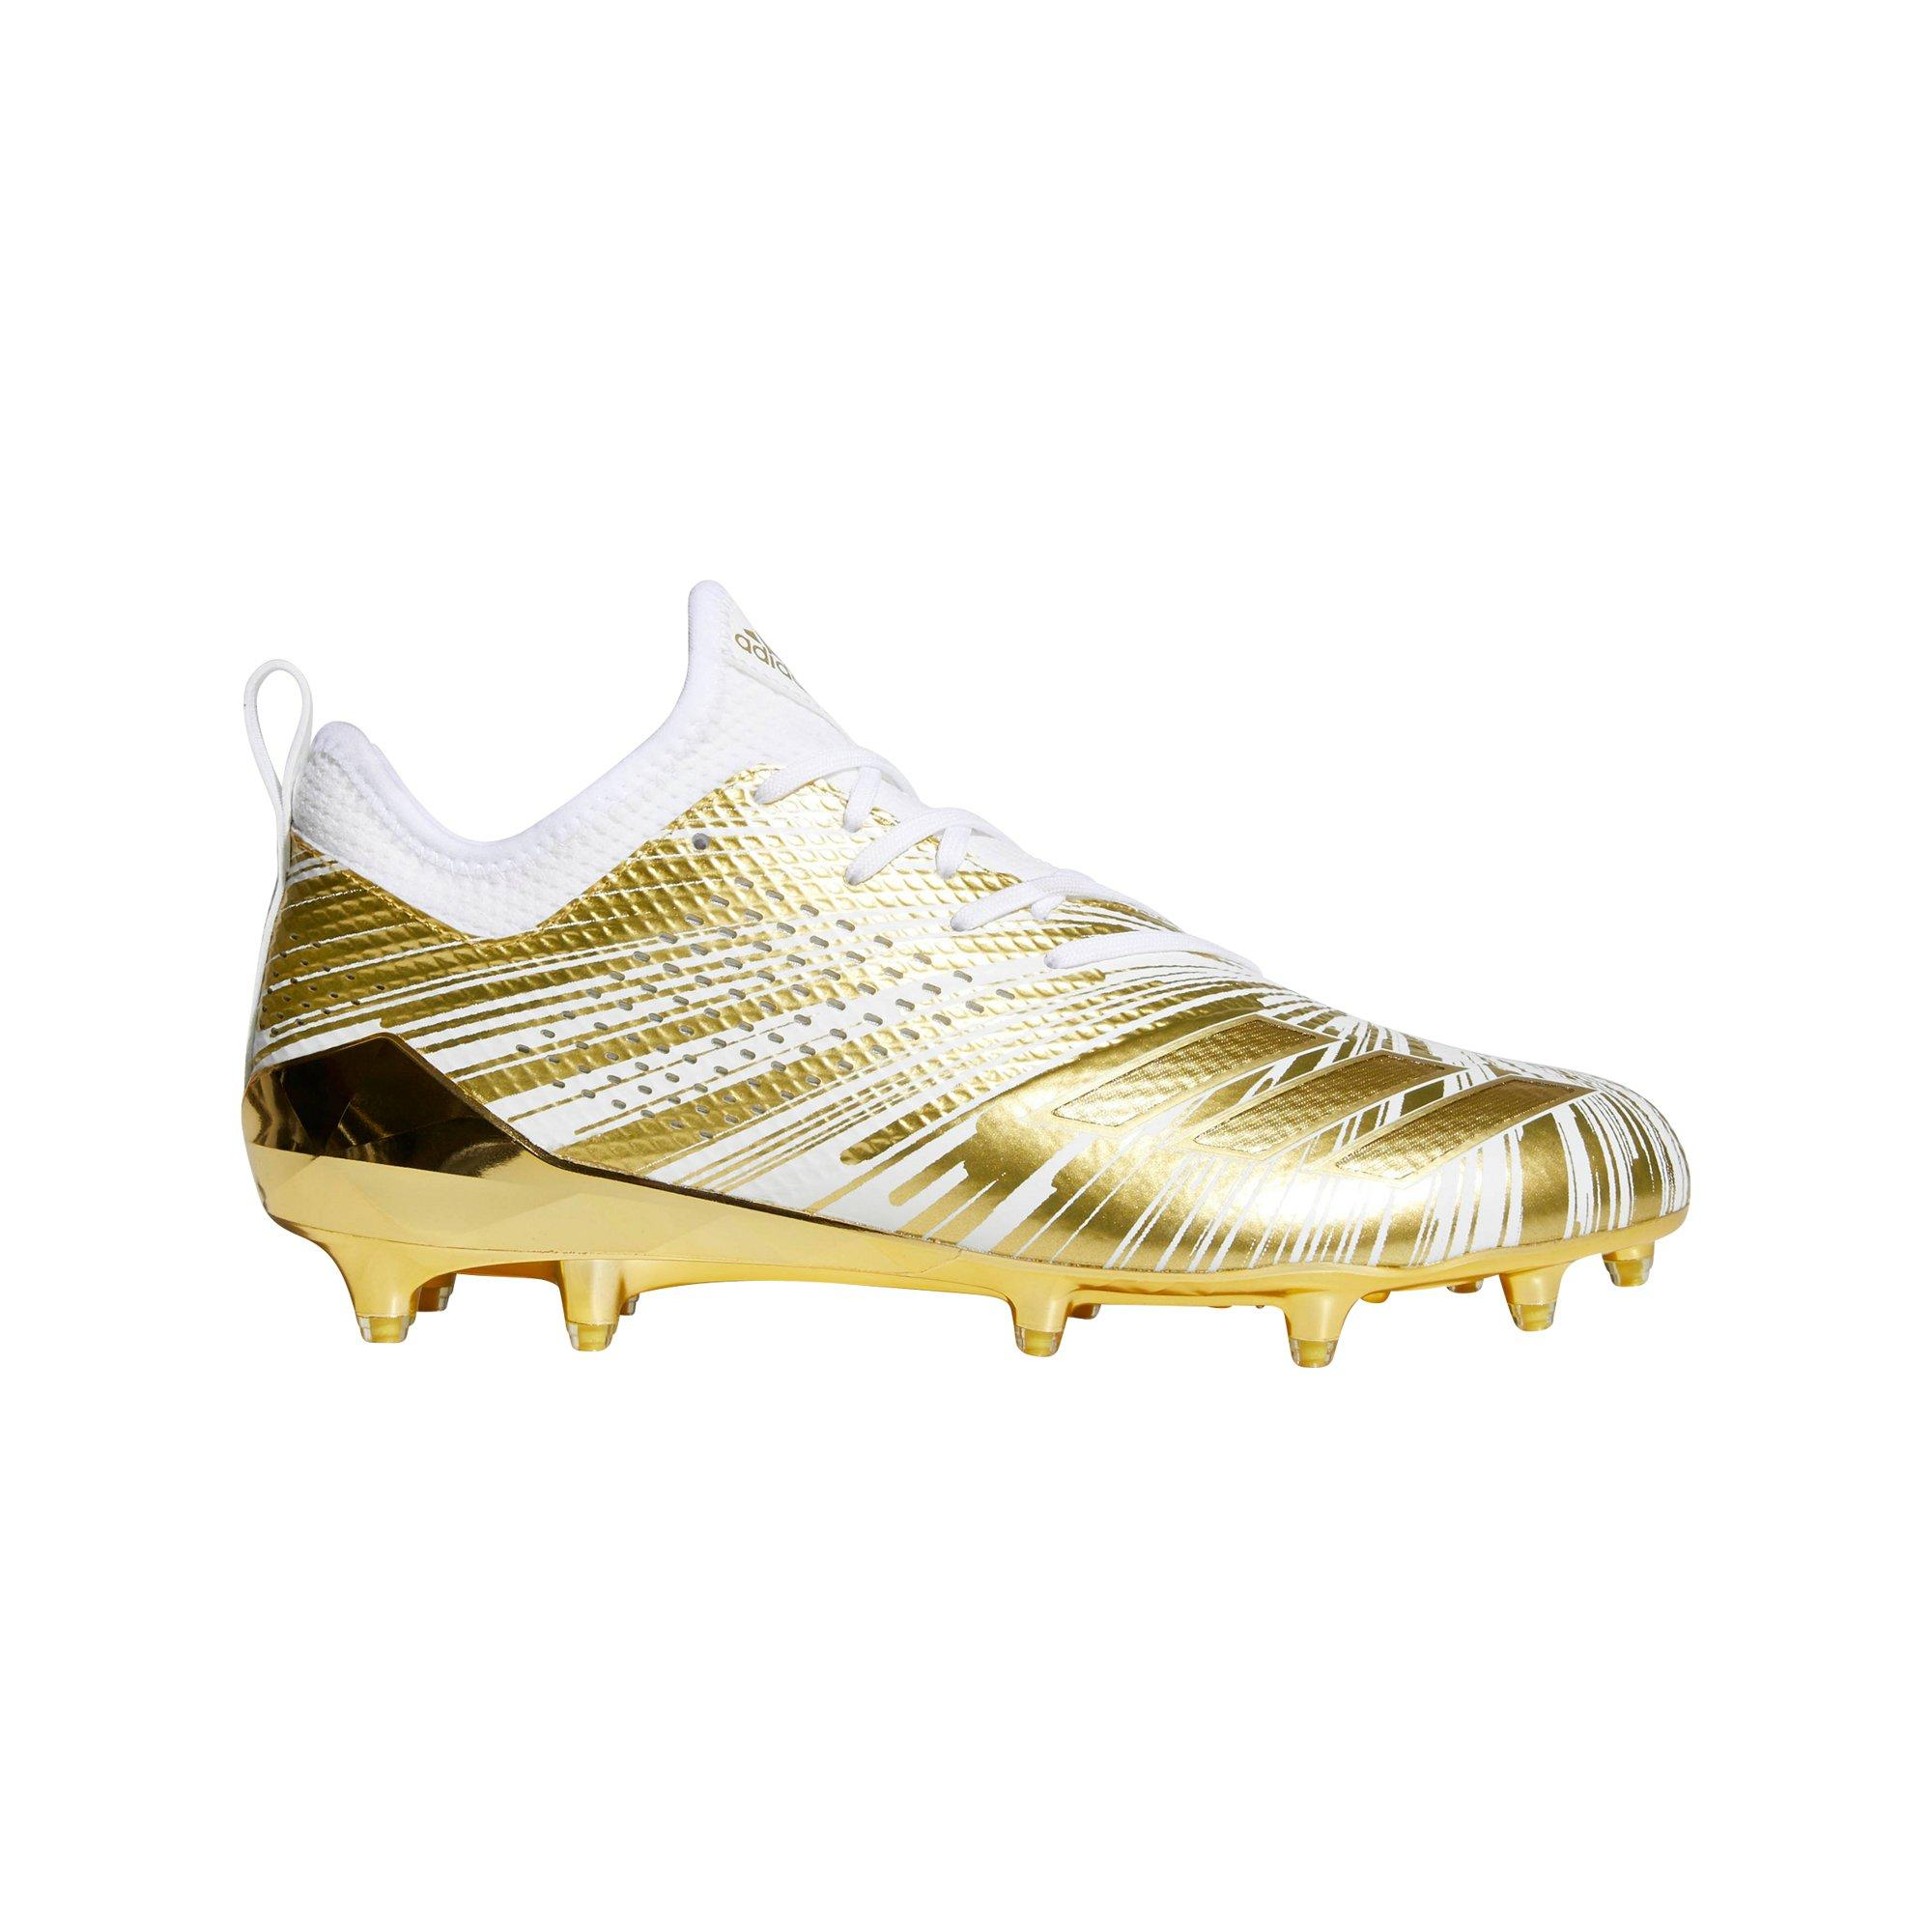 online store 07555 25502 Men u0027s Football Cleats  adizero 5-Star  u0026 Freak X Carbon   adidas  US